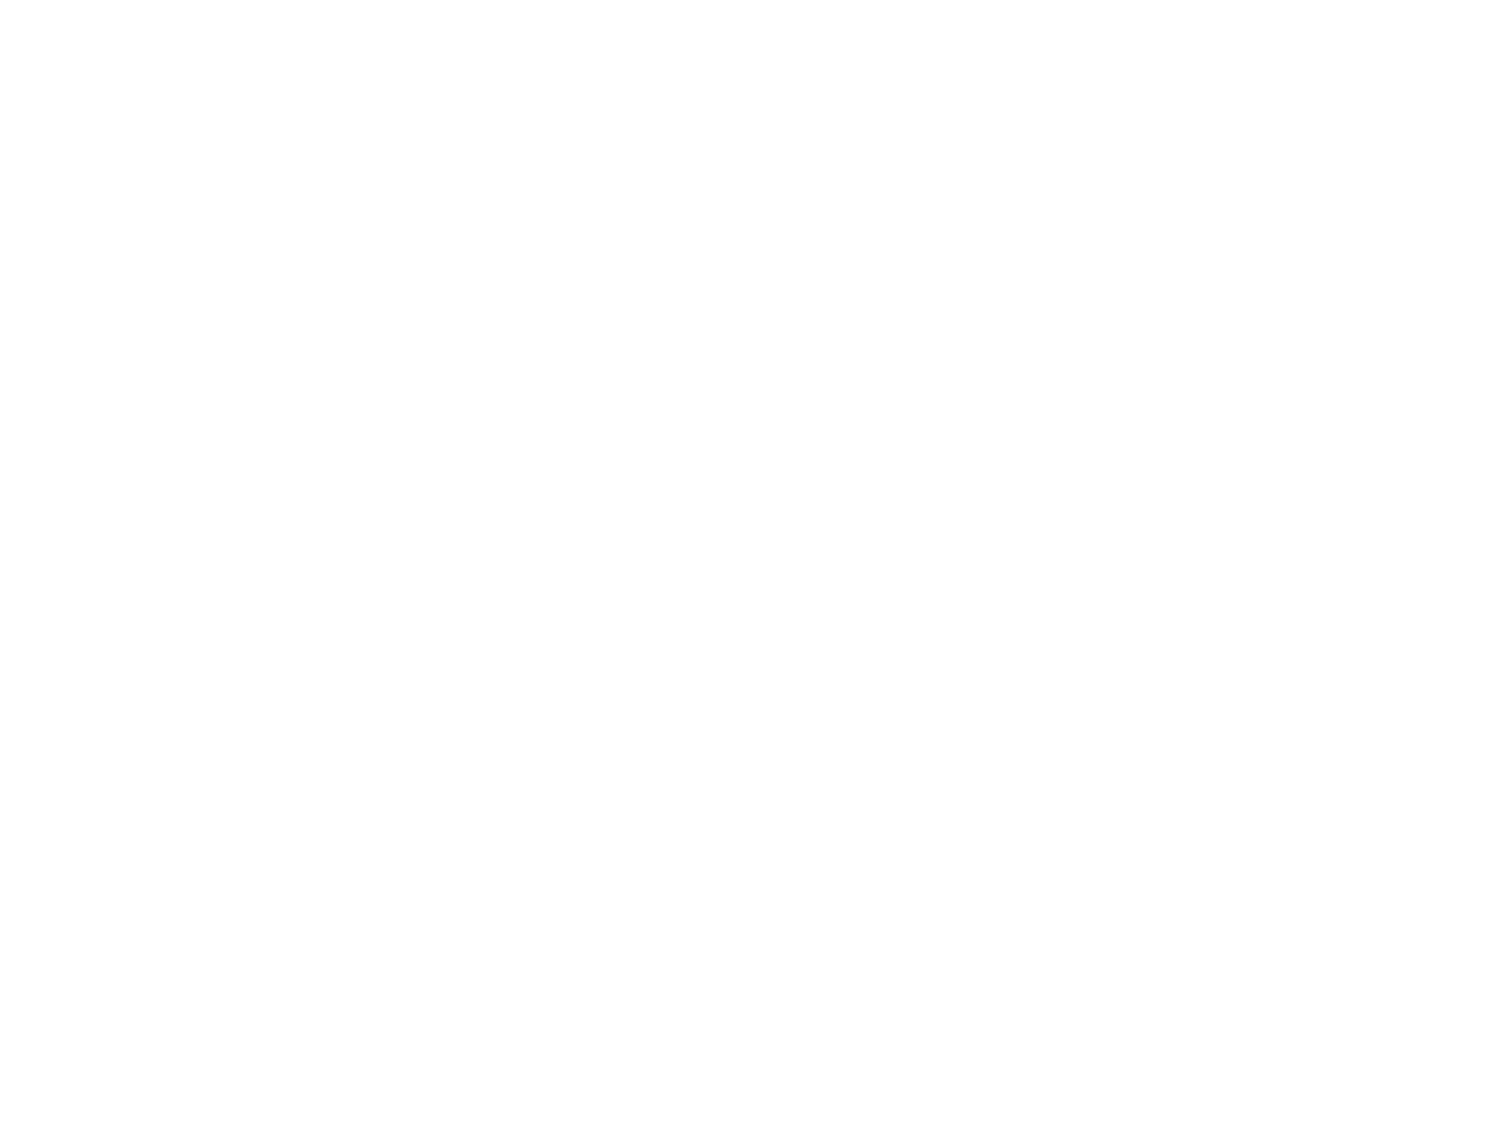 The Academy Physical Therapy